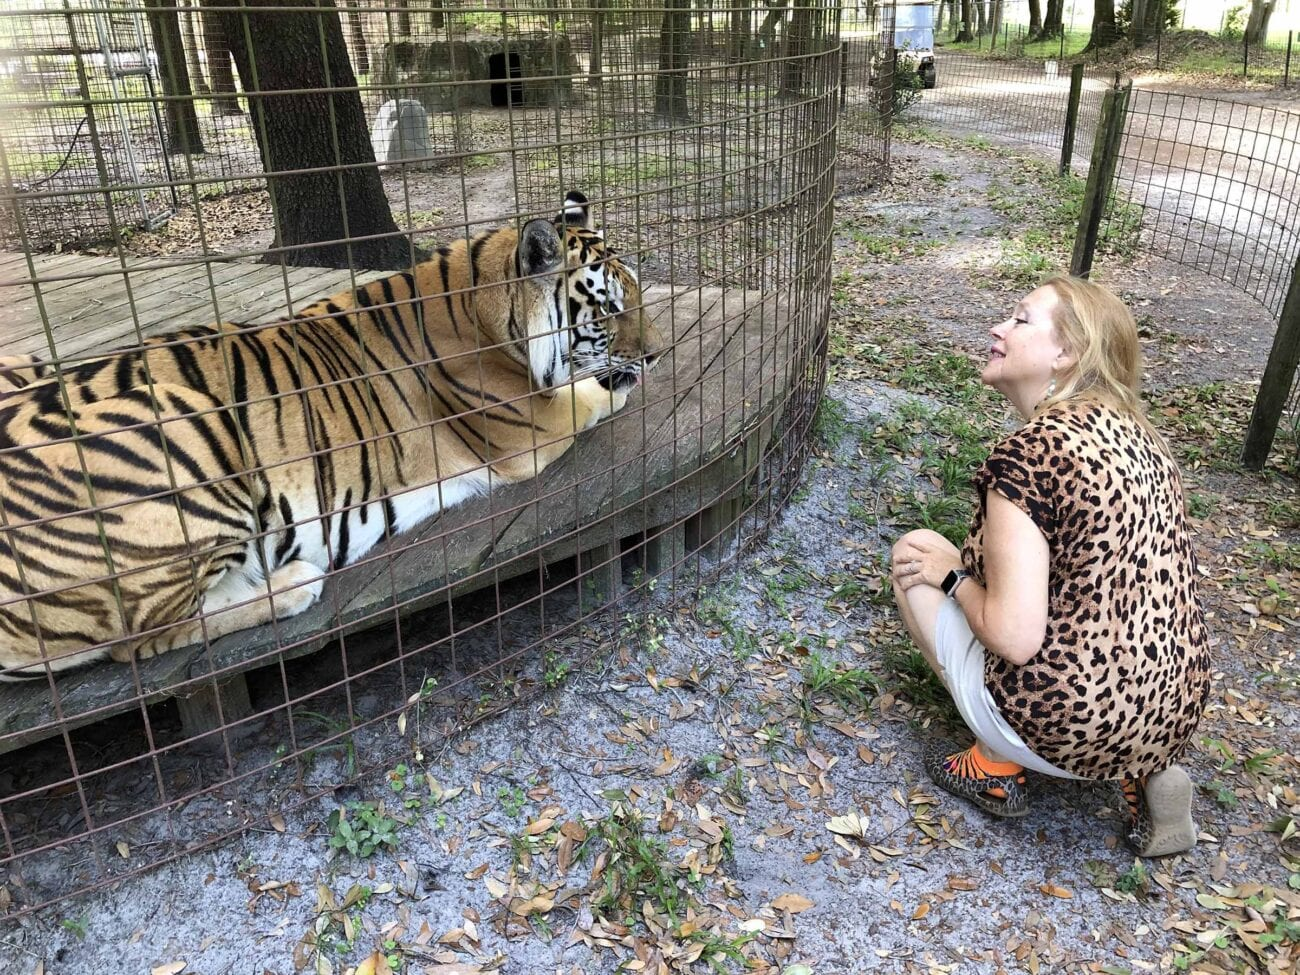 Carole Baskin and BCR are finally getting their goal: Joe Exotic's zoo. Here's everything you need to know about the court ruling.